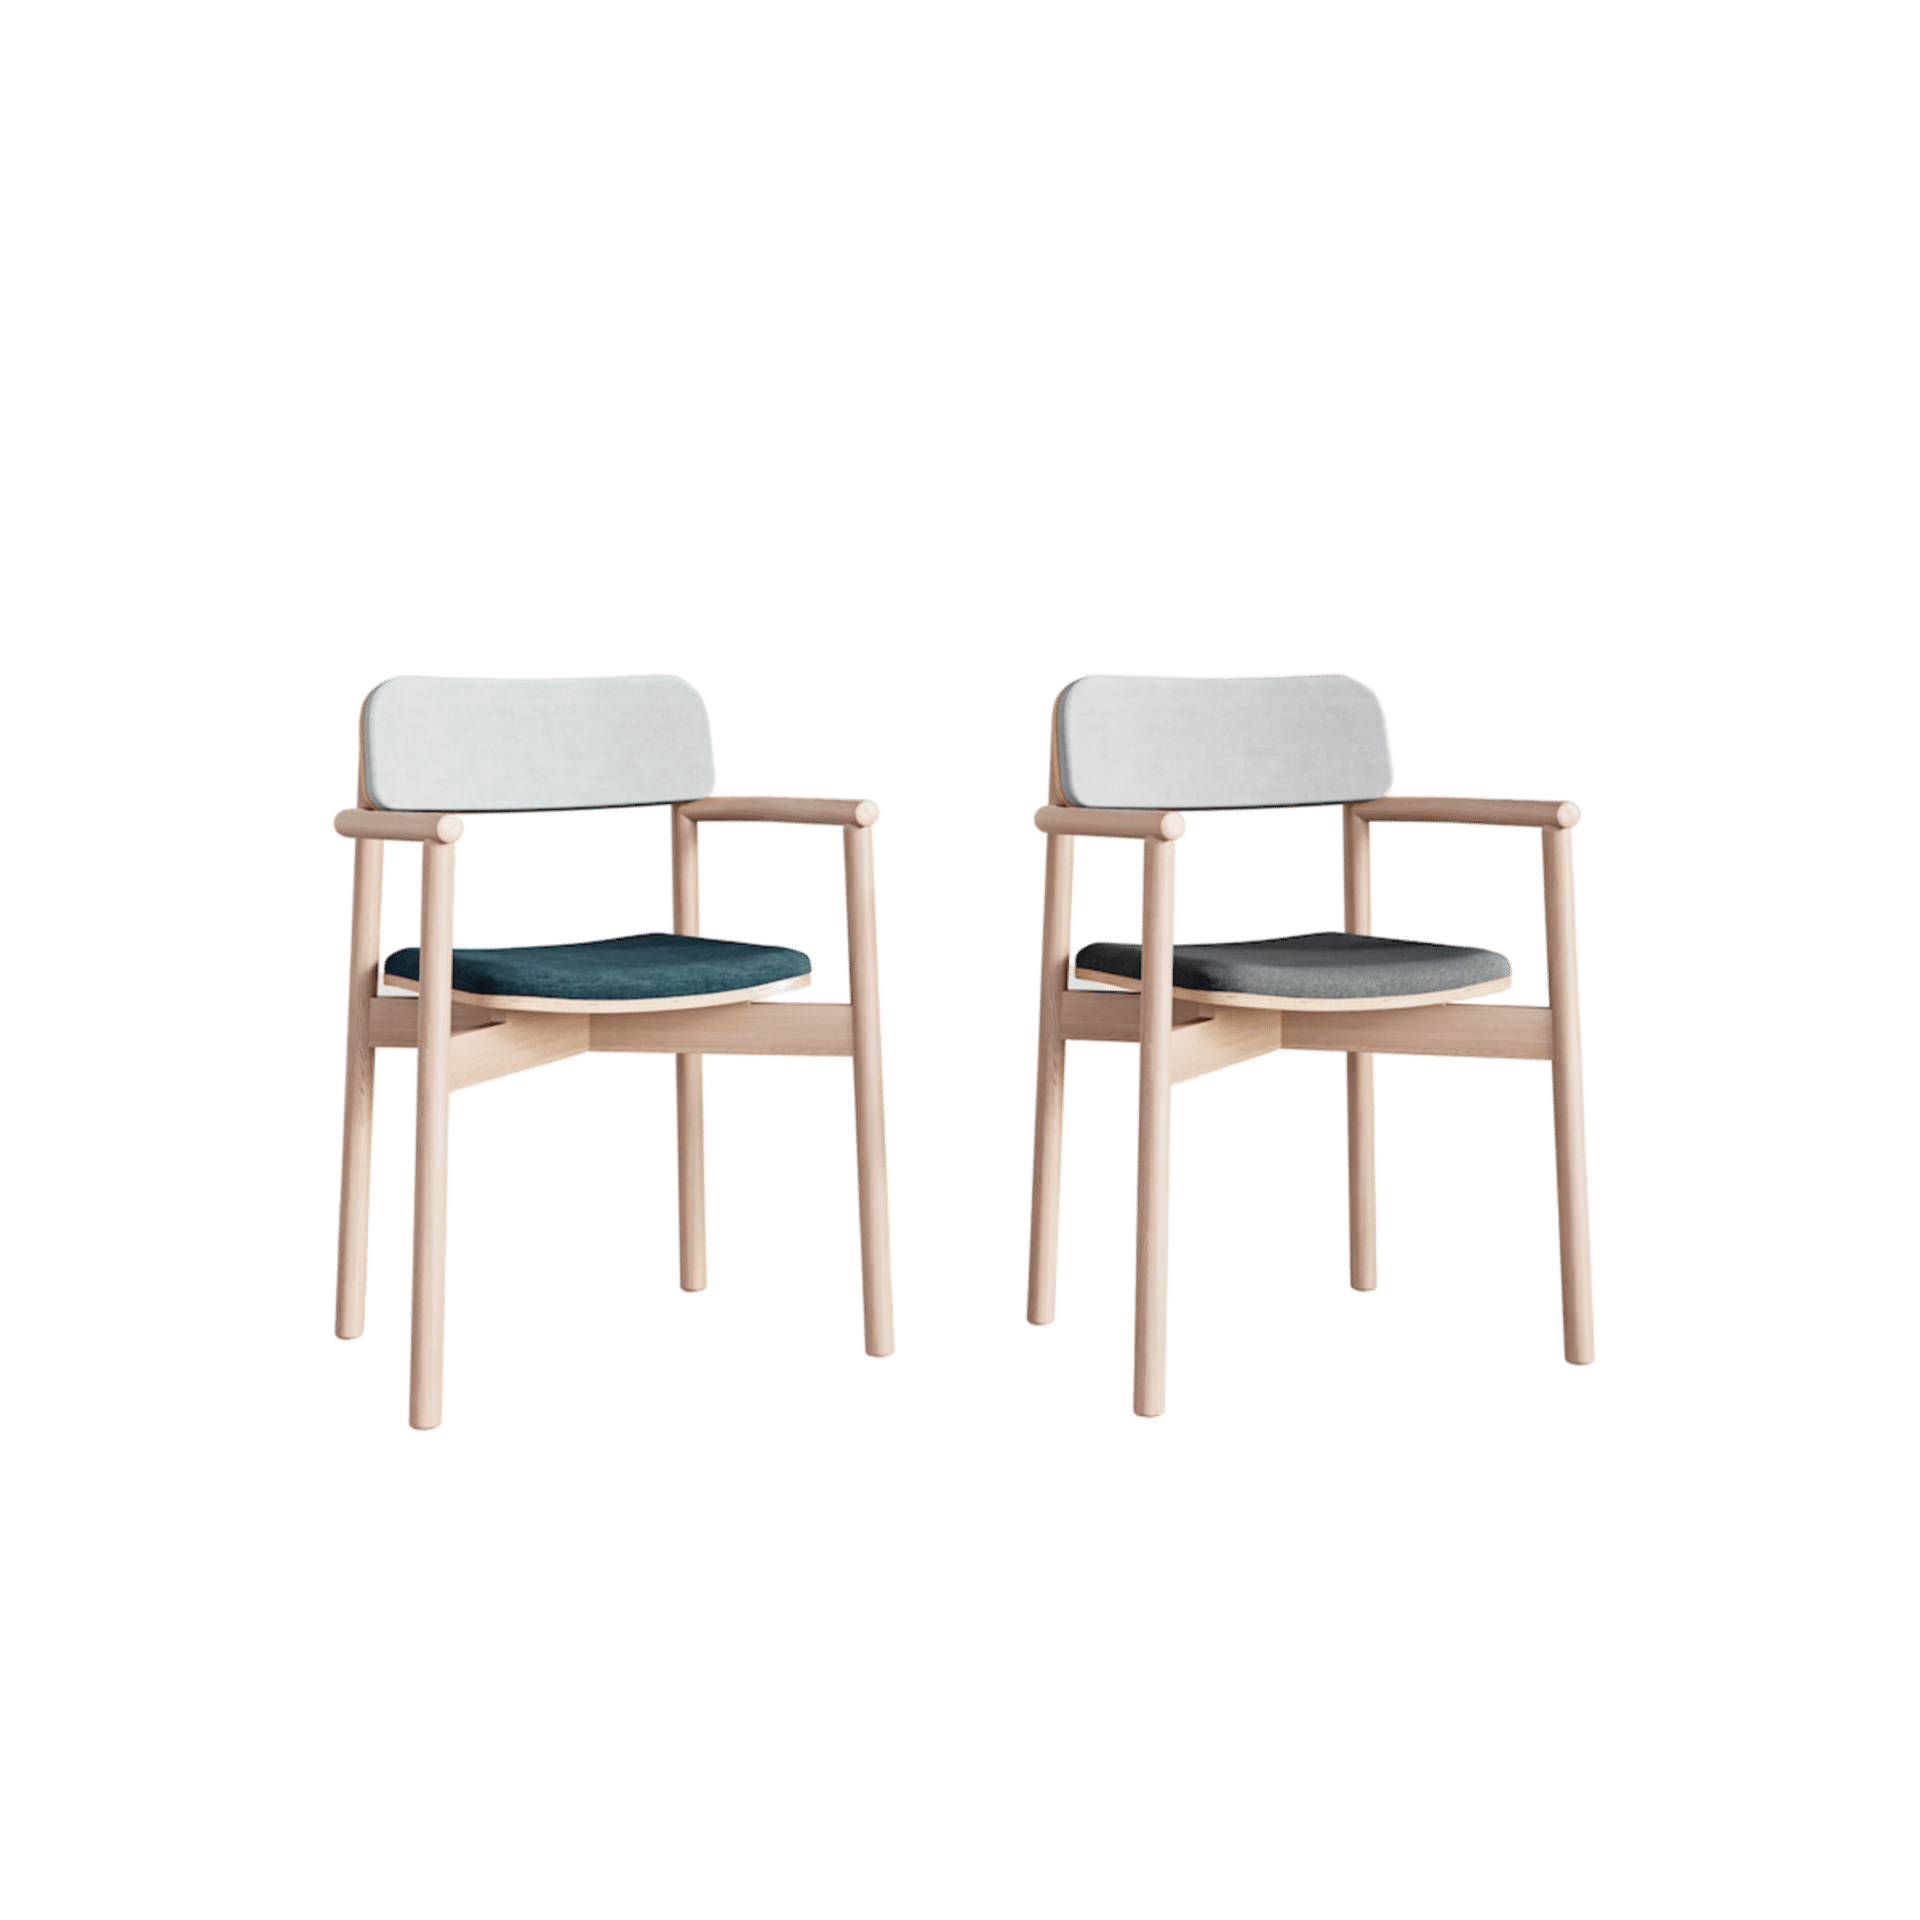 products_jasny_arm_chair_upholstered